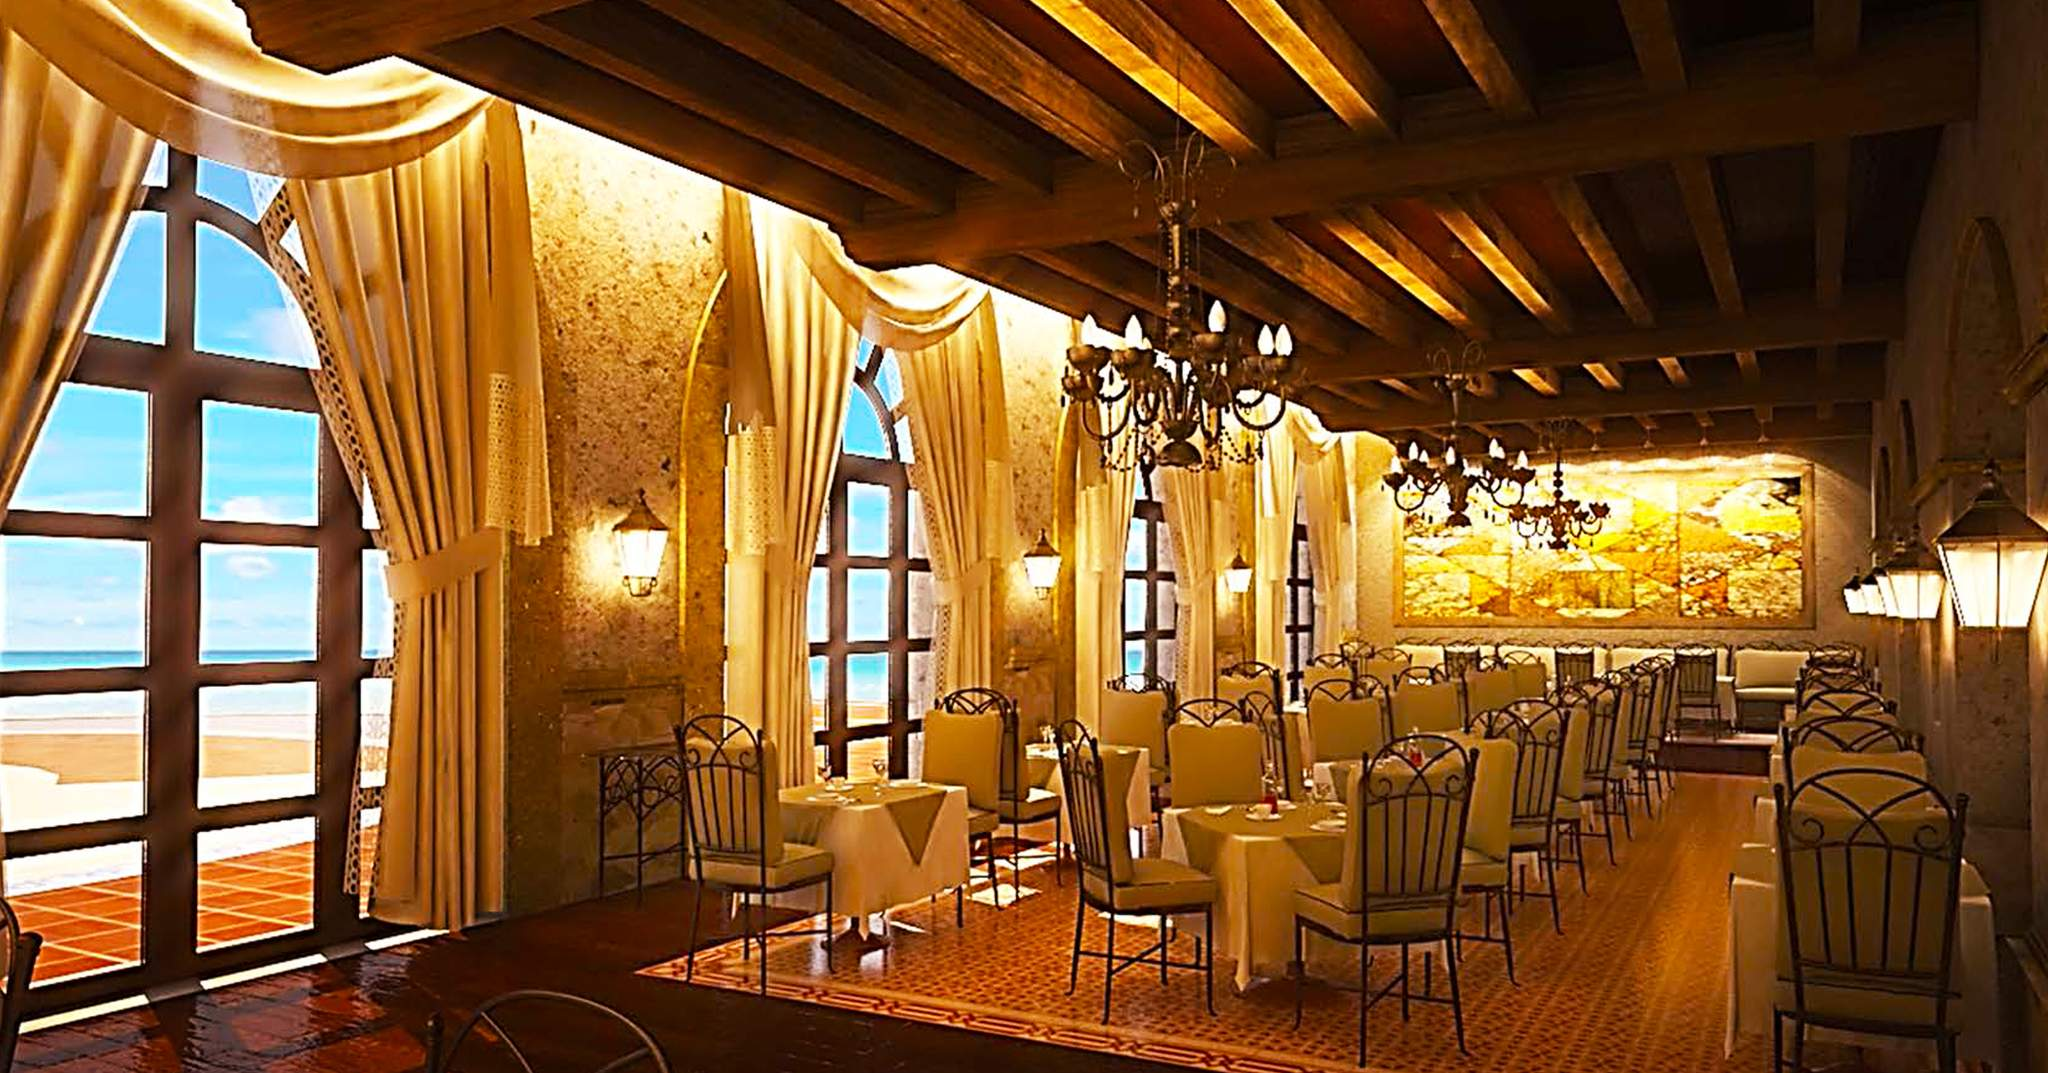 Luxury 5 star hotels deals from luxury link for Salon bel hair